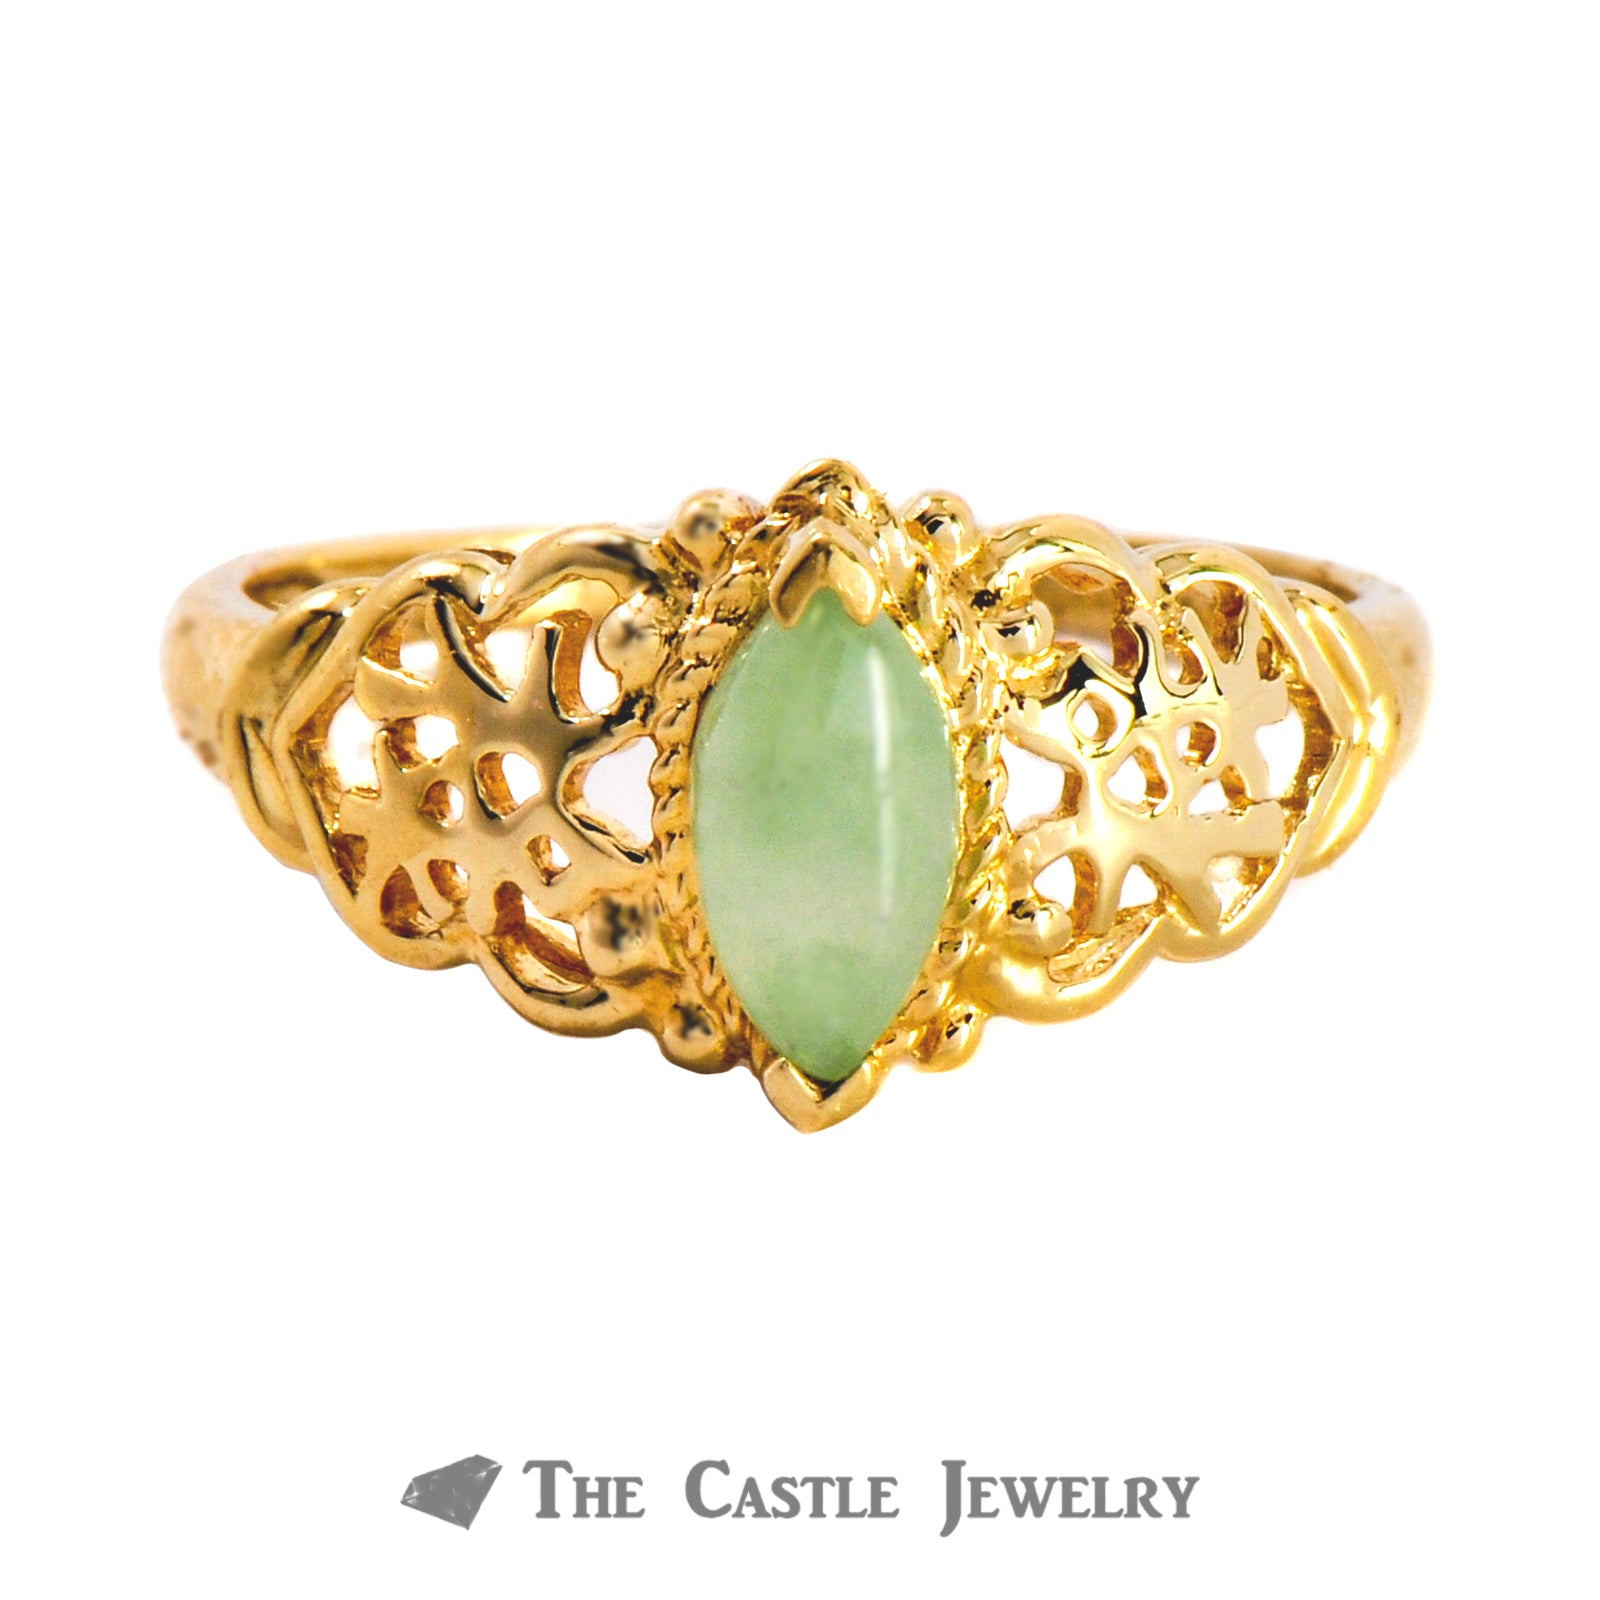 Marquise Cut Jade In 10K Yellow Gold Filiigree Mounting